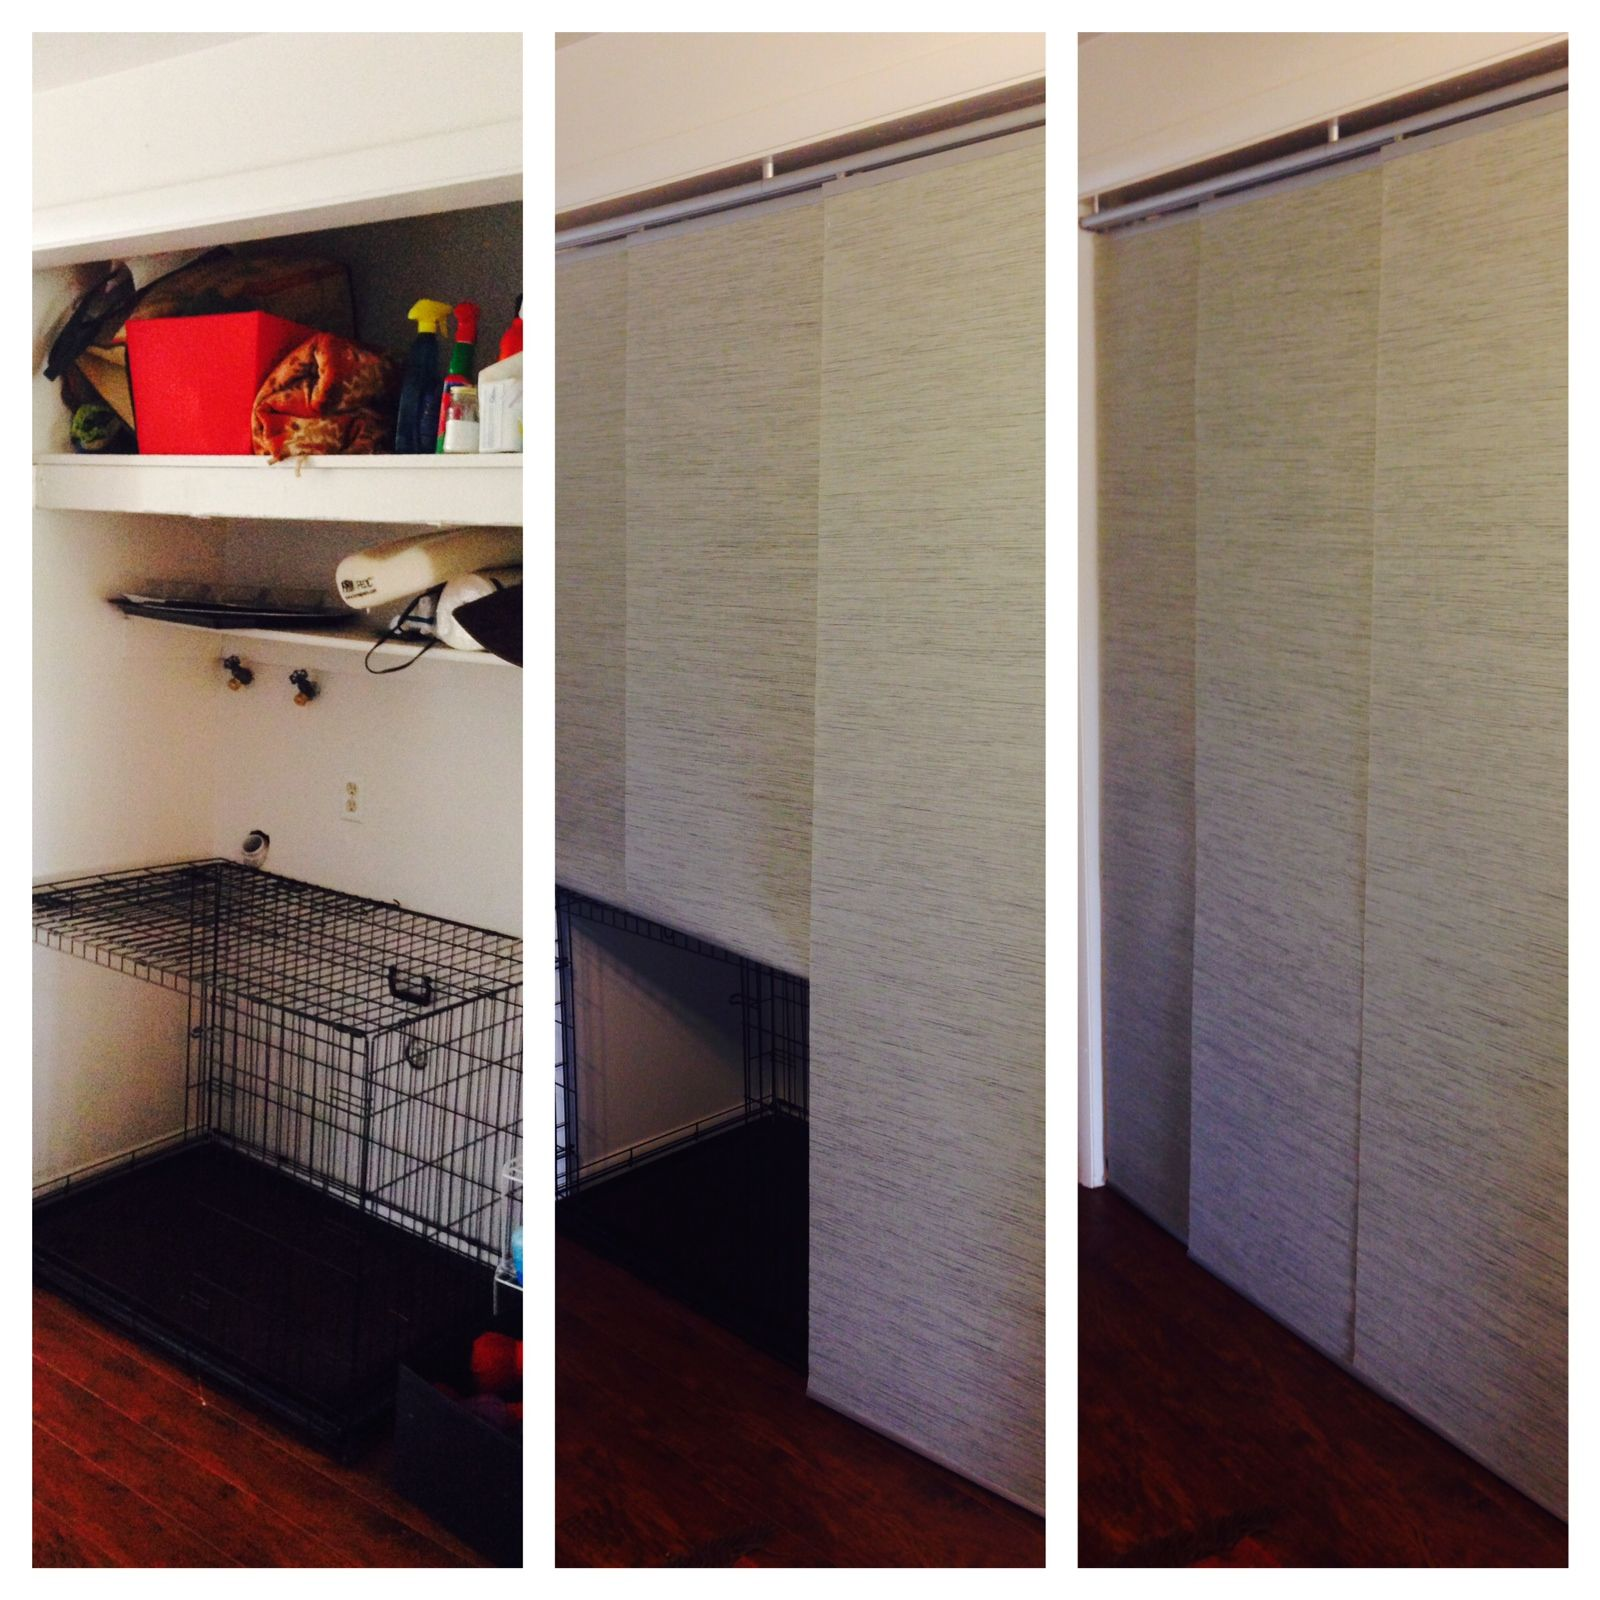 Kvartal Curtain Panel Instead Of Doors Conceals Storage Area And Dog  Kennel. Pretty Easy And